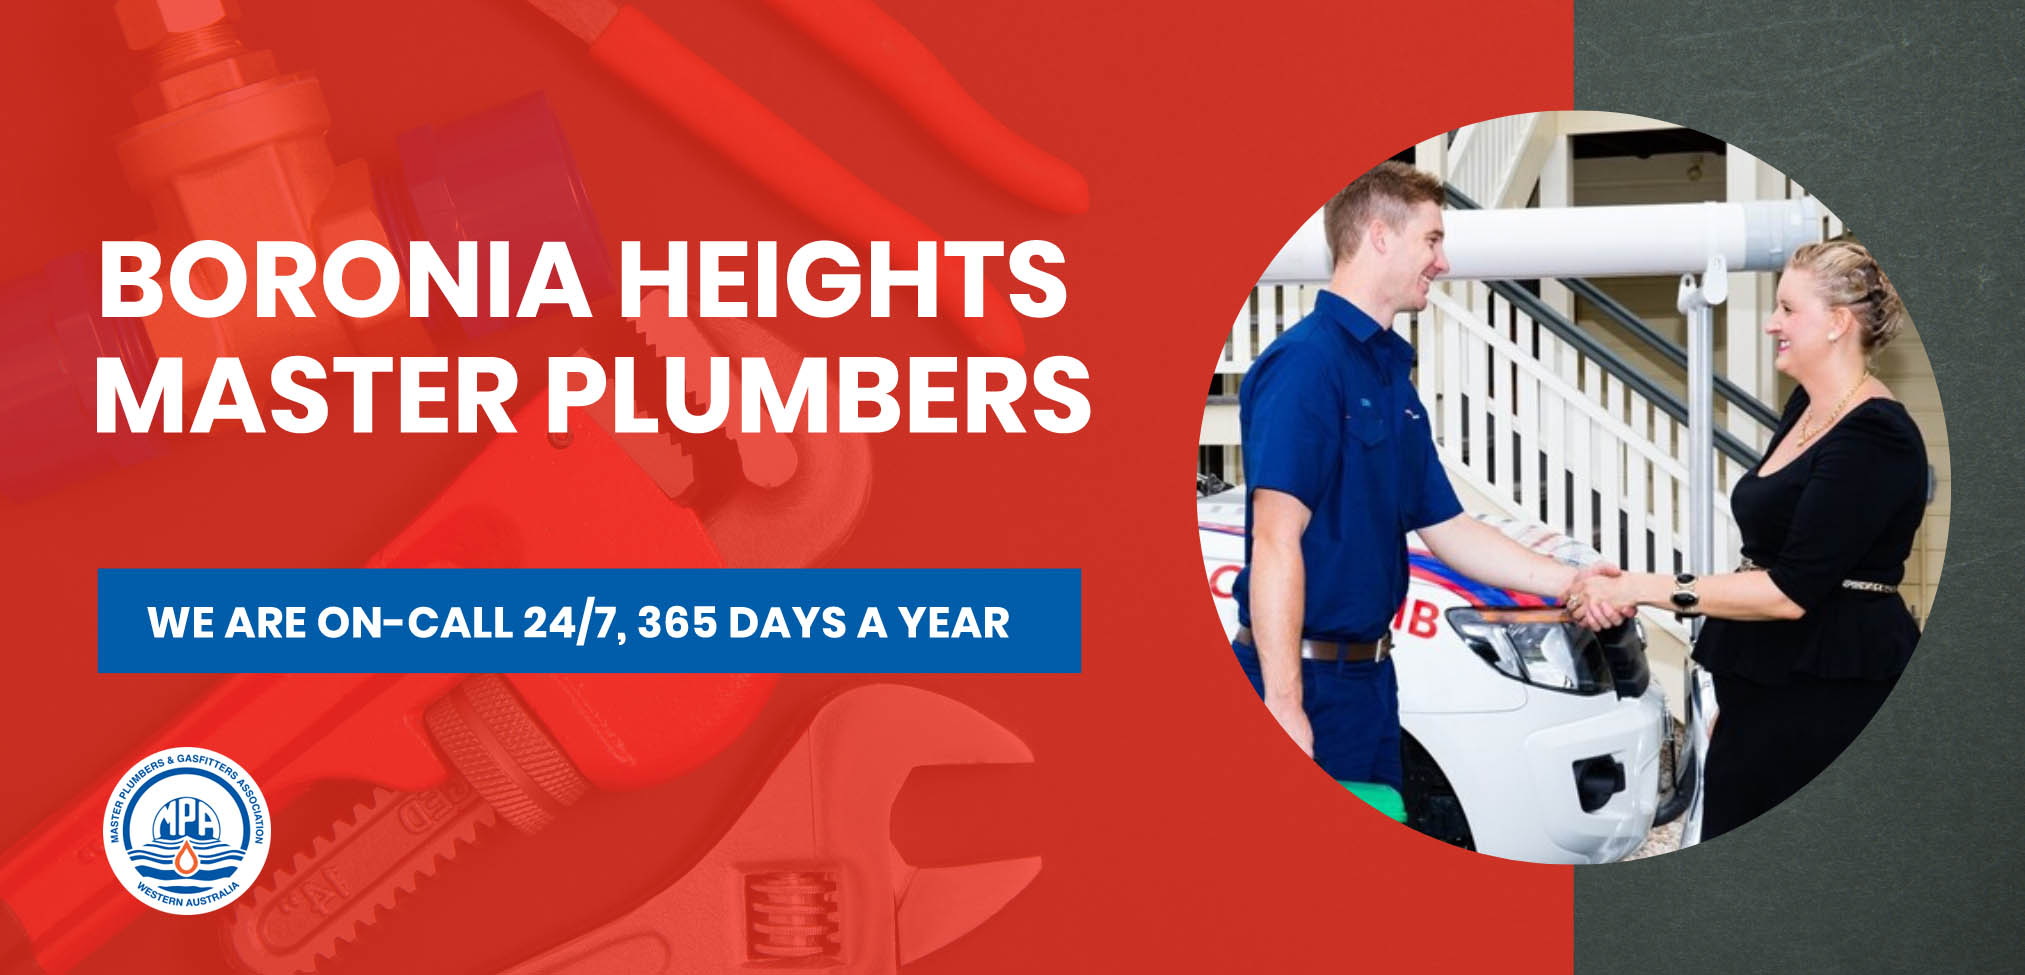 Plumber Boronia Heights